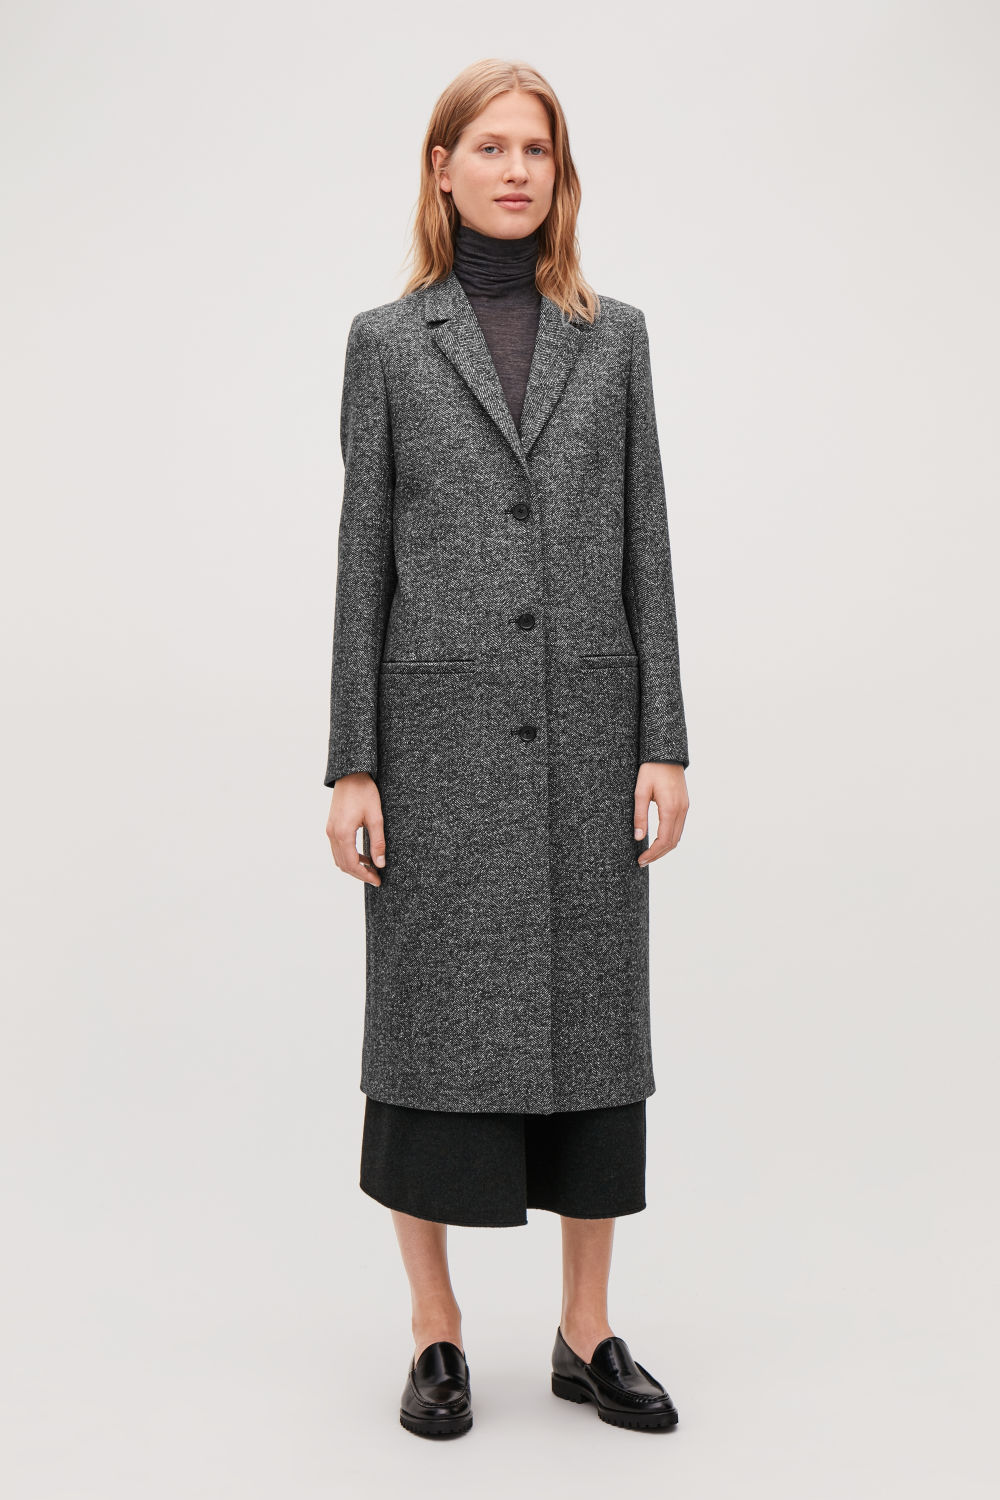 Coats Jackets Women Cos Tendencies Short Shirts Basic Long Collar Less Wine Burgundy S Herringbone Wool Coat